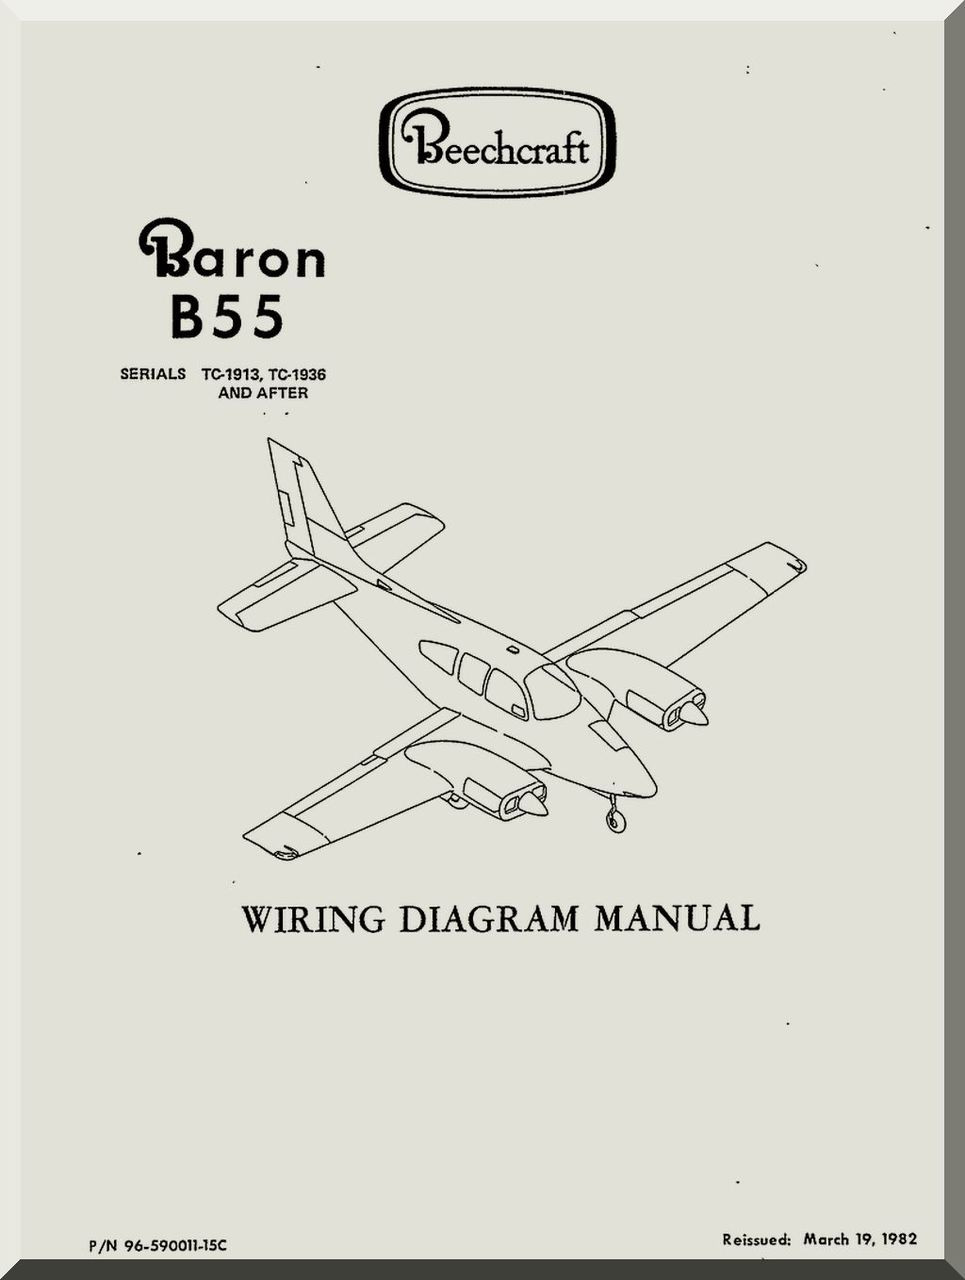 hight resolution of  aircraft wiring diagram manual price 14 85 image 1